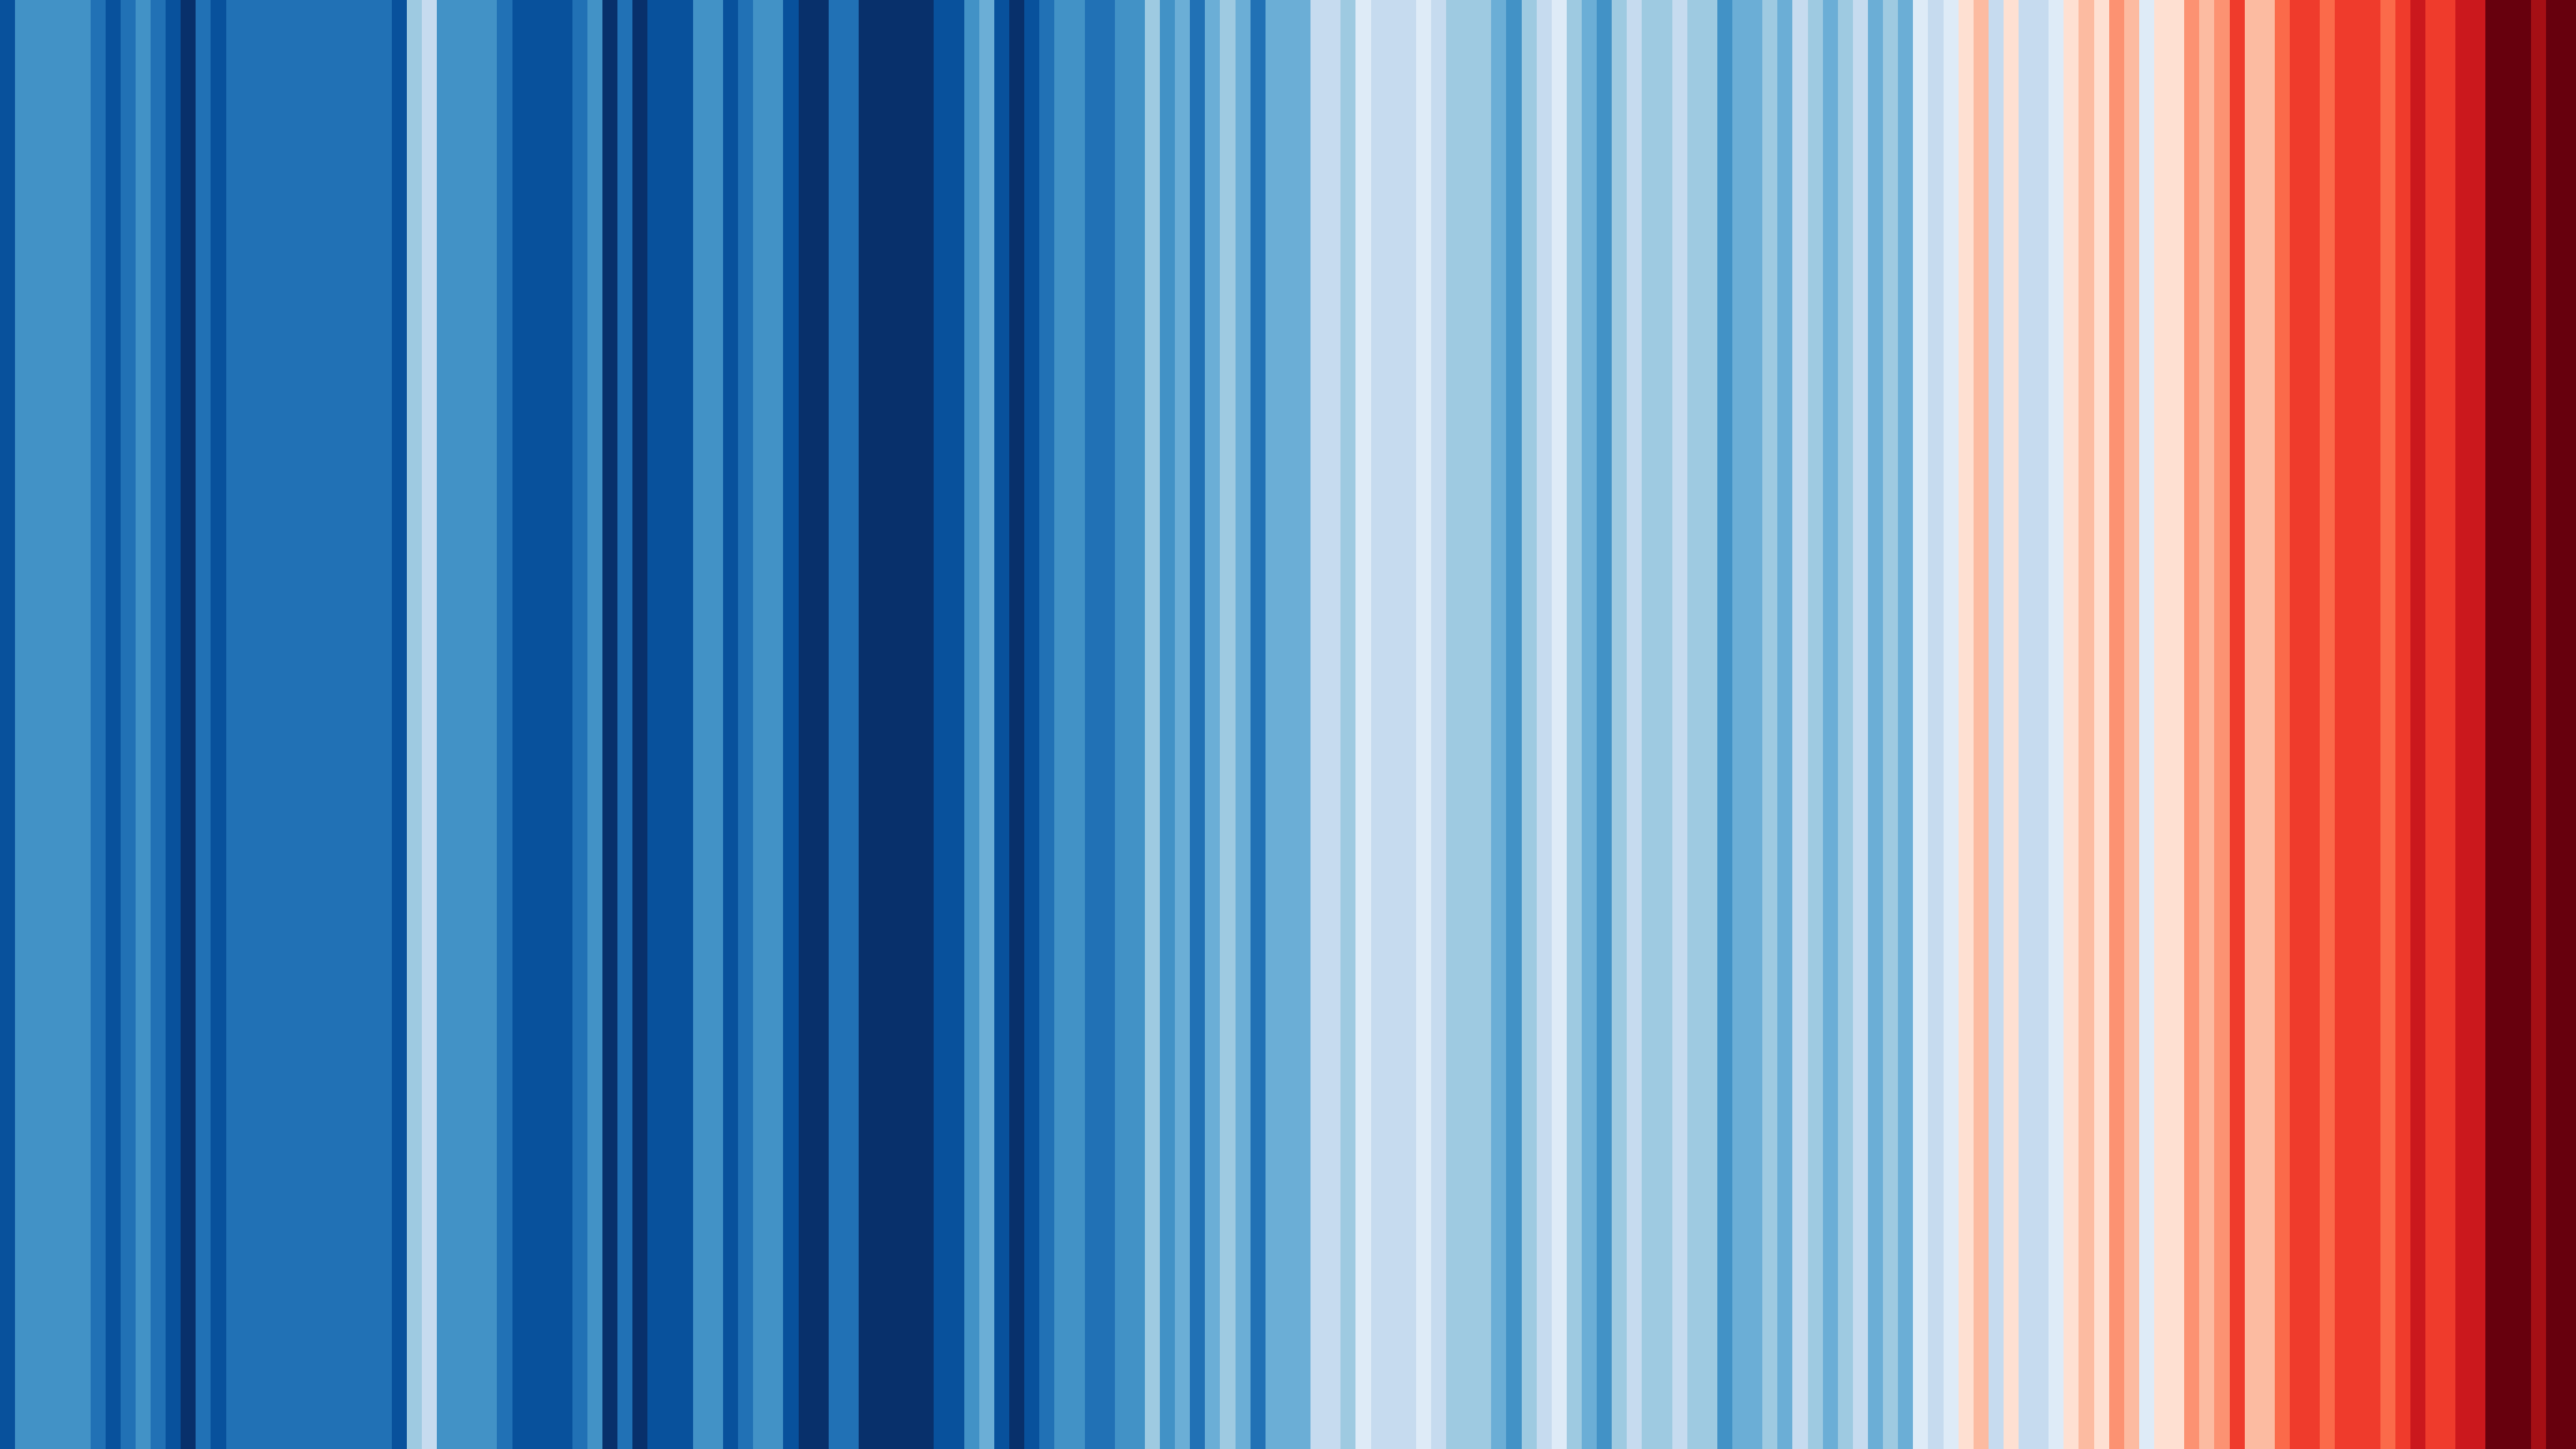 Data visualization using blue, white, and red stripes to indicate changes in temperature by year over time.